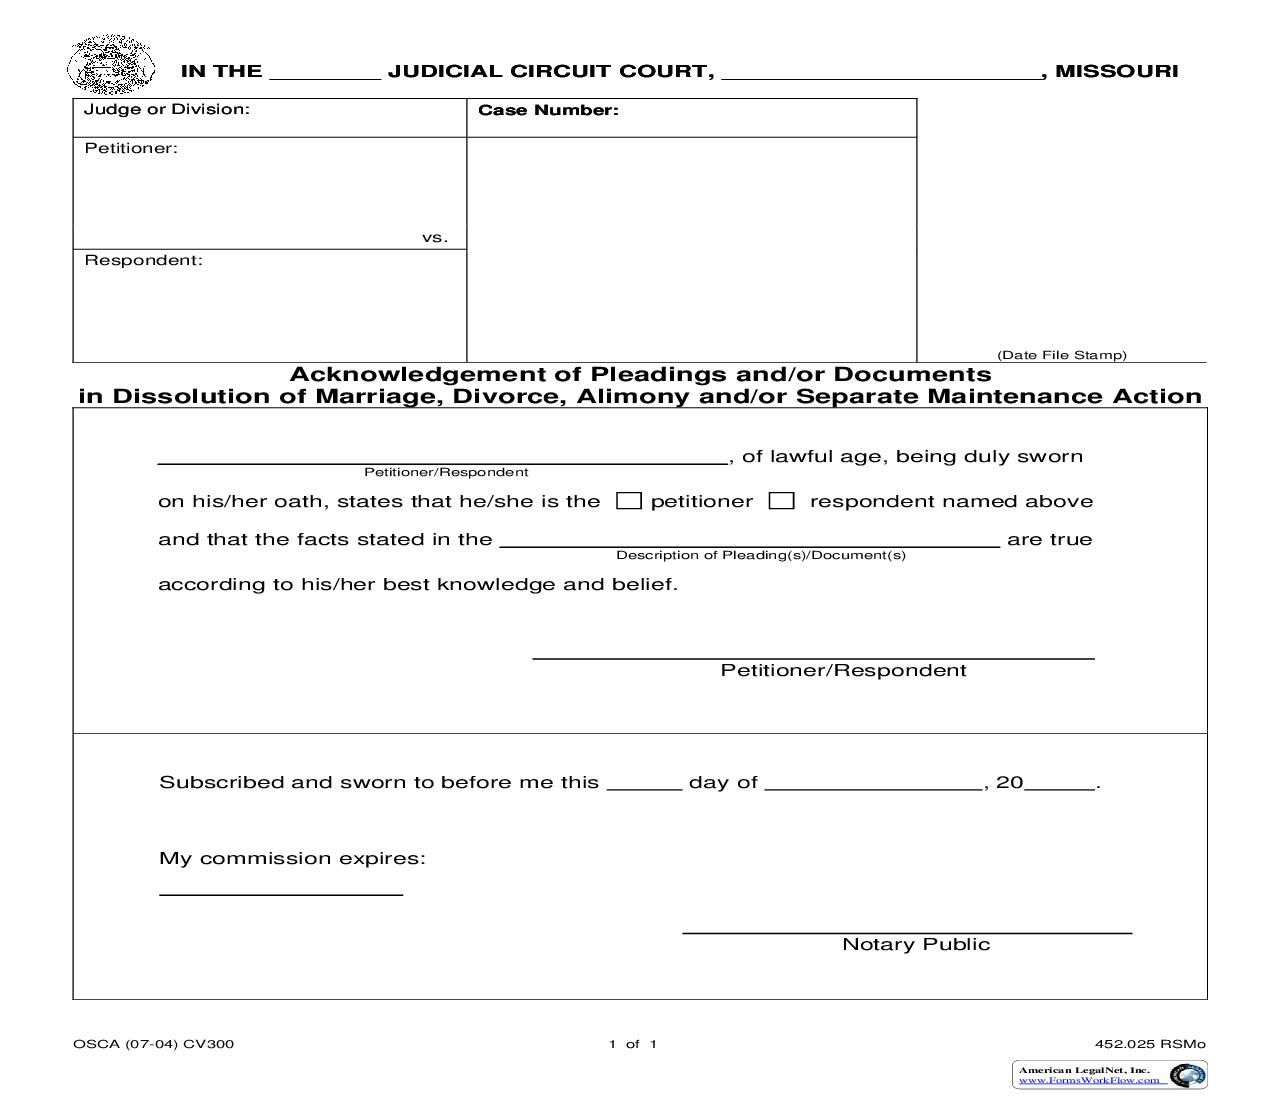 Acknowledgement Of Pleadings And Or Documents In Dissolution Of Marriage Dissolution Of Marriage Missouri Circuit Court